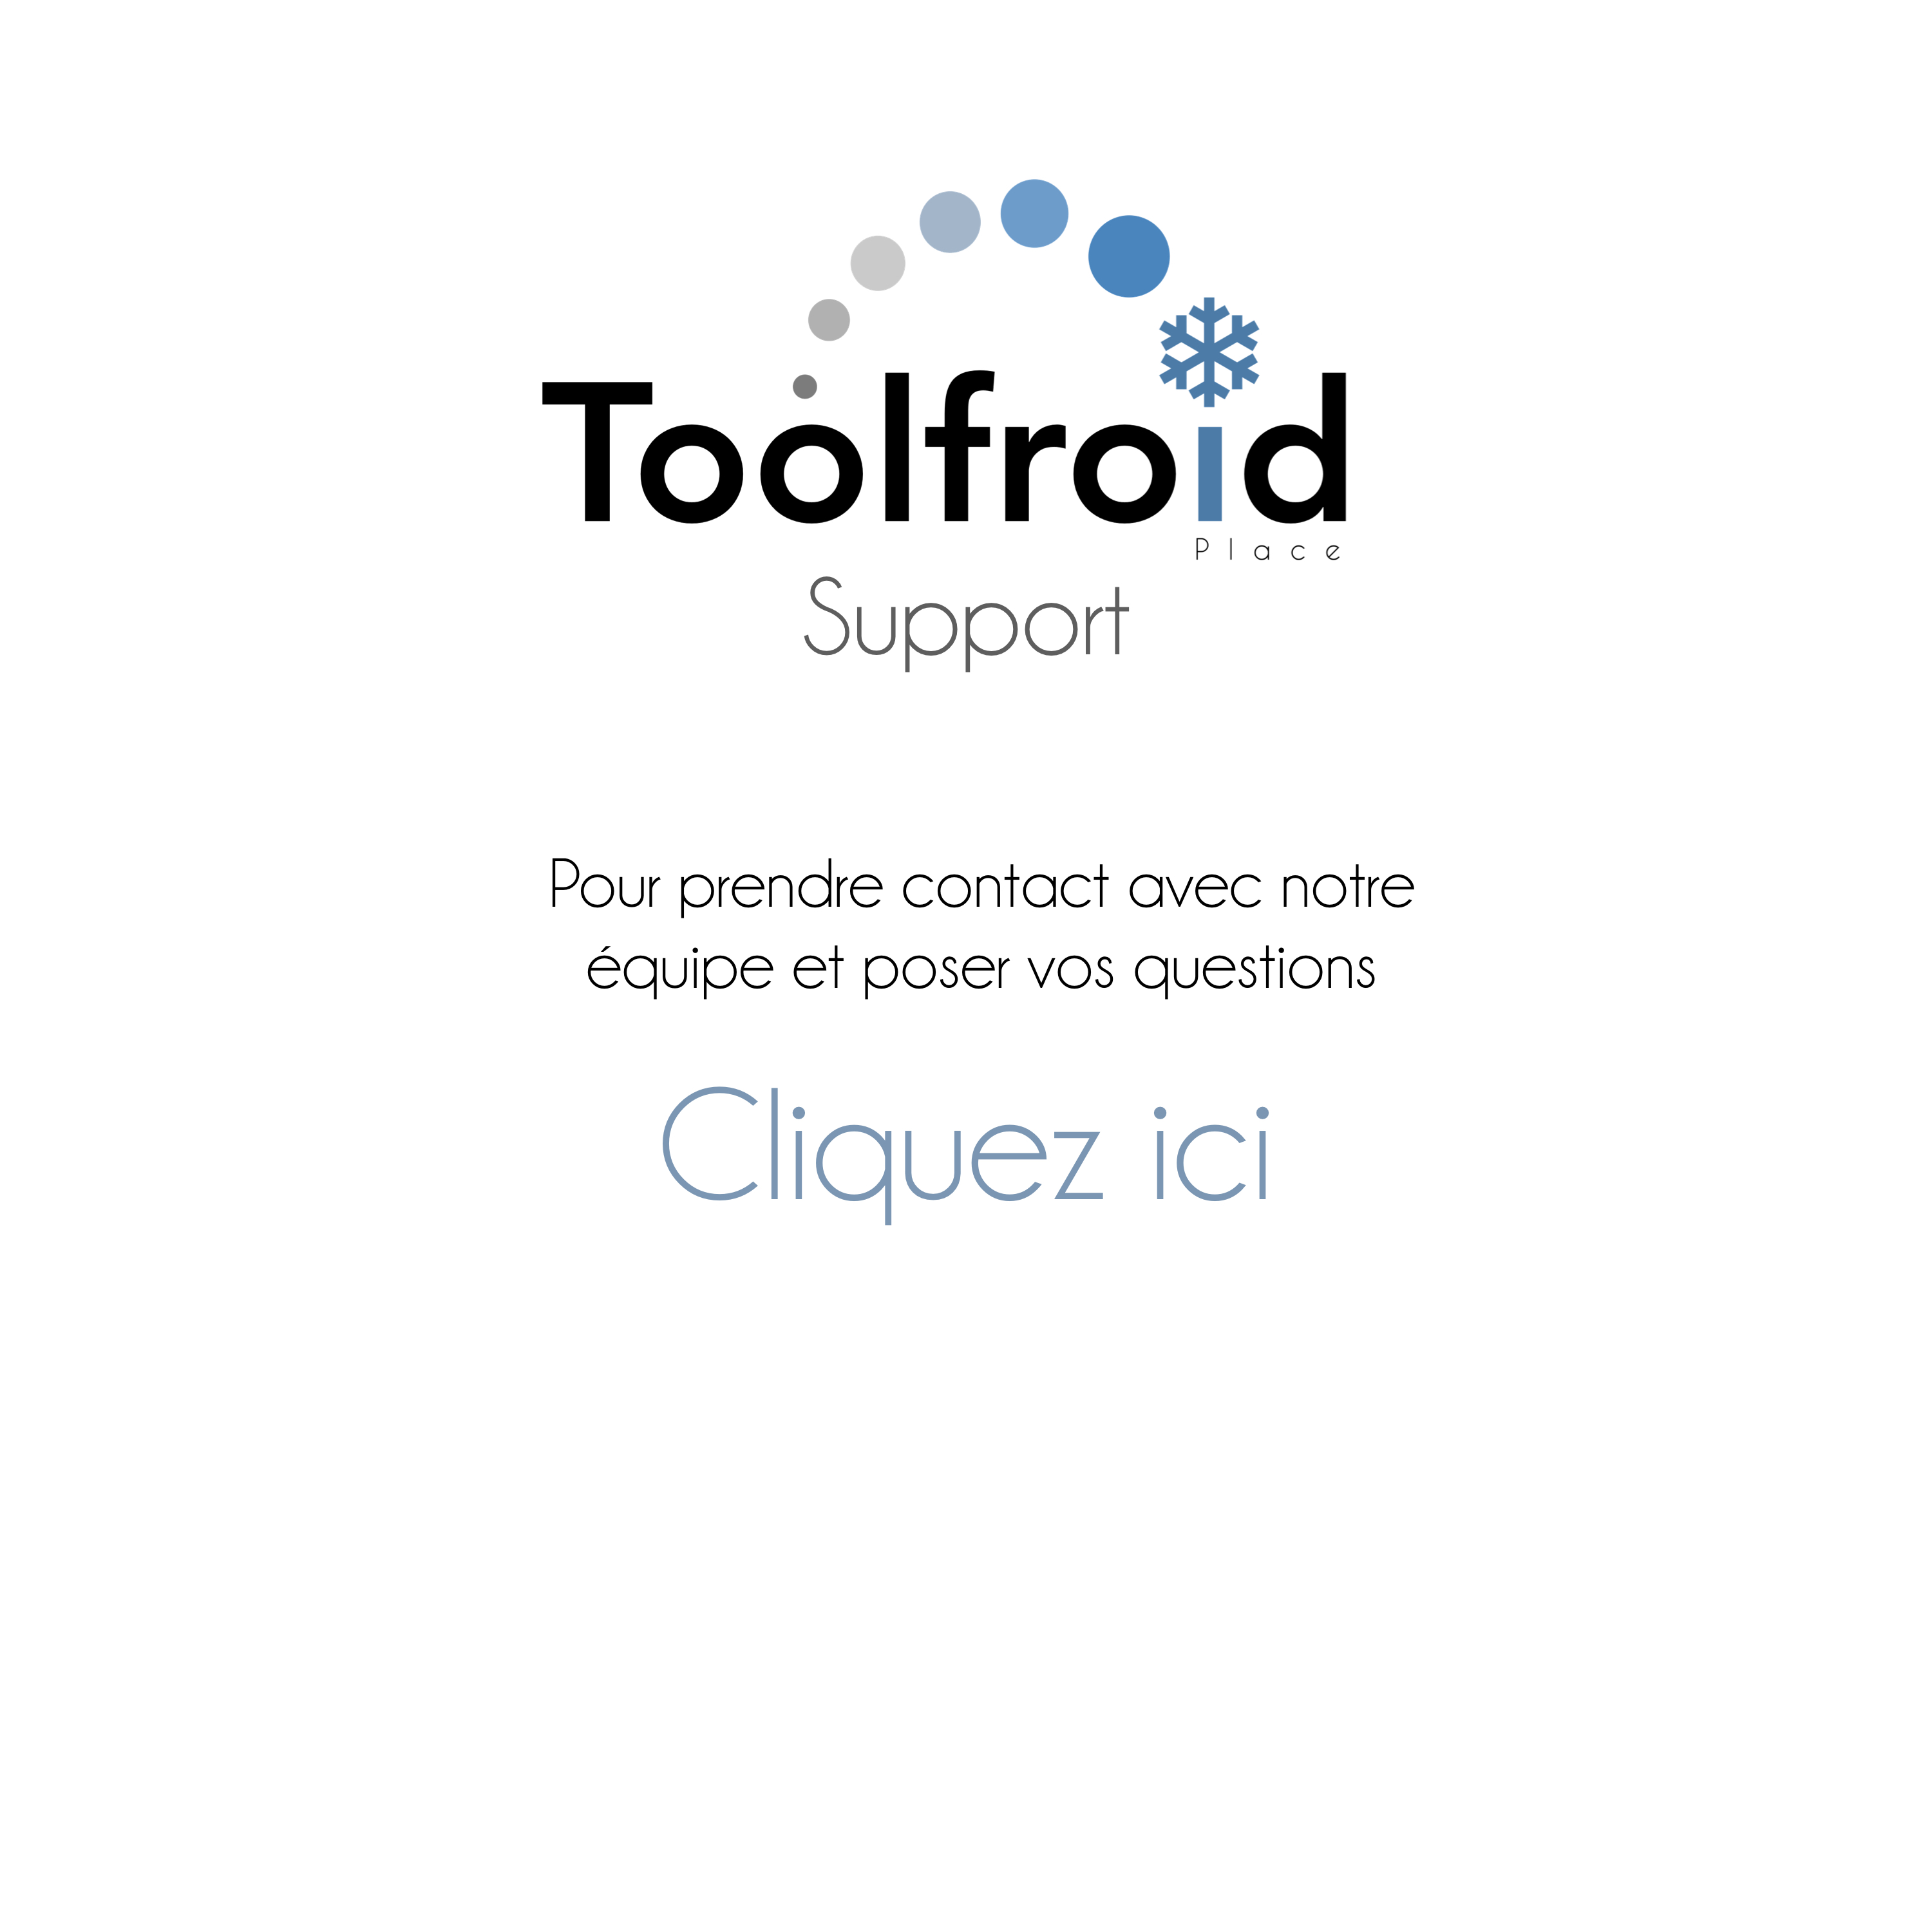 contact tool froid